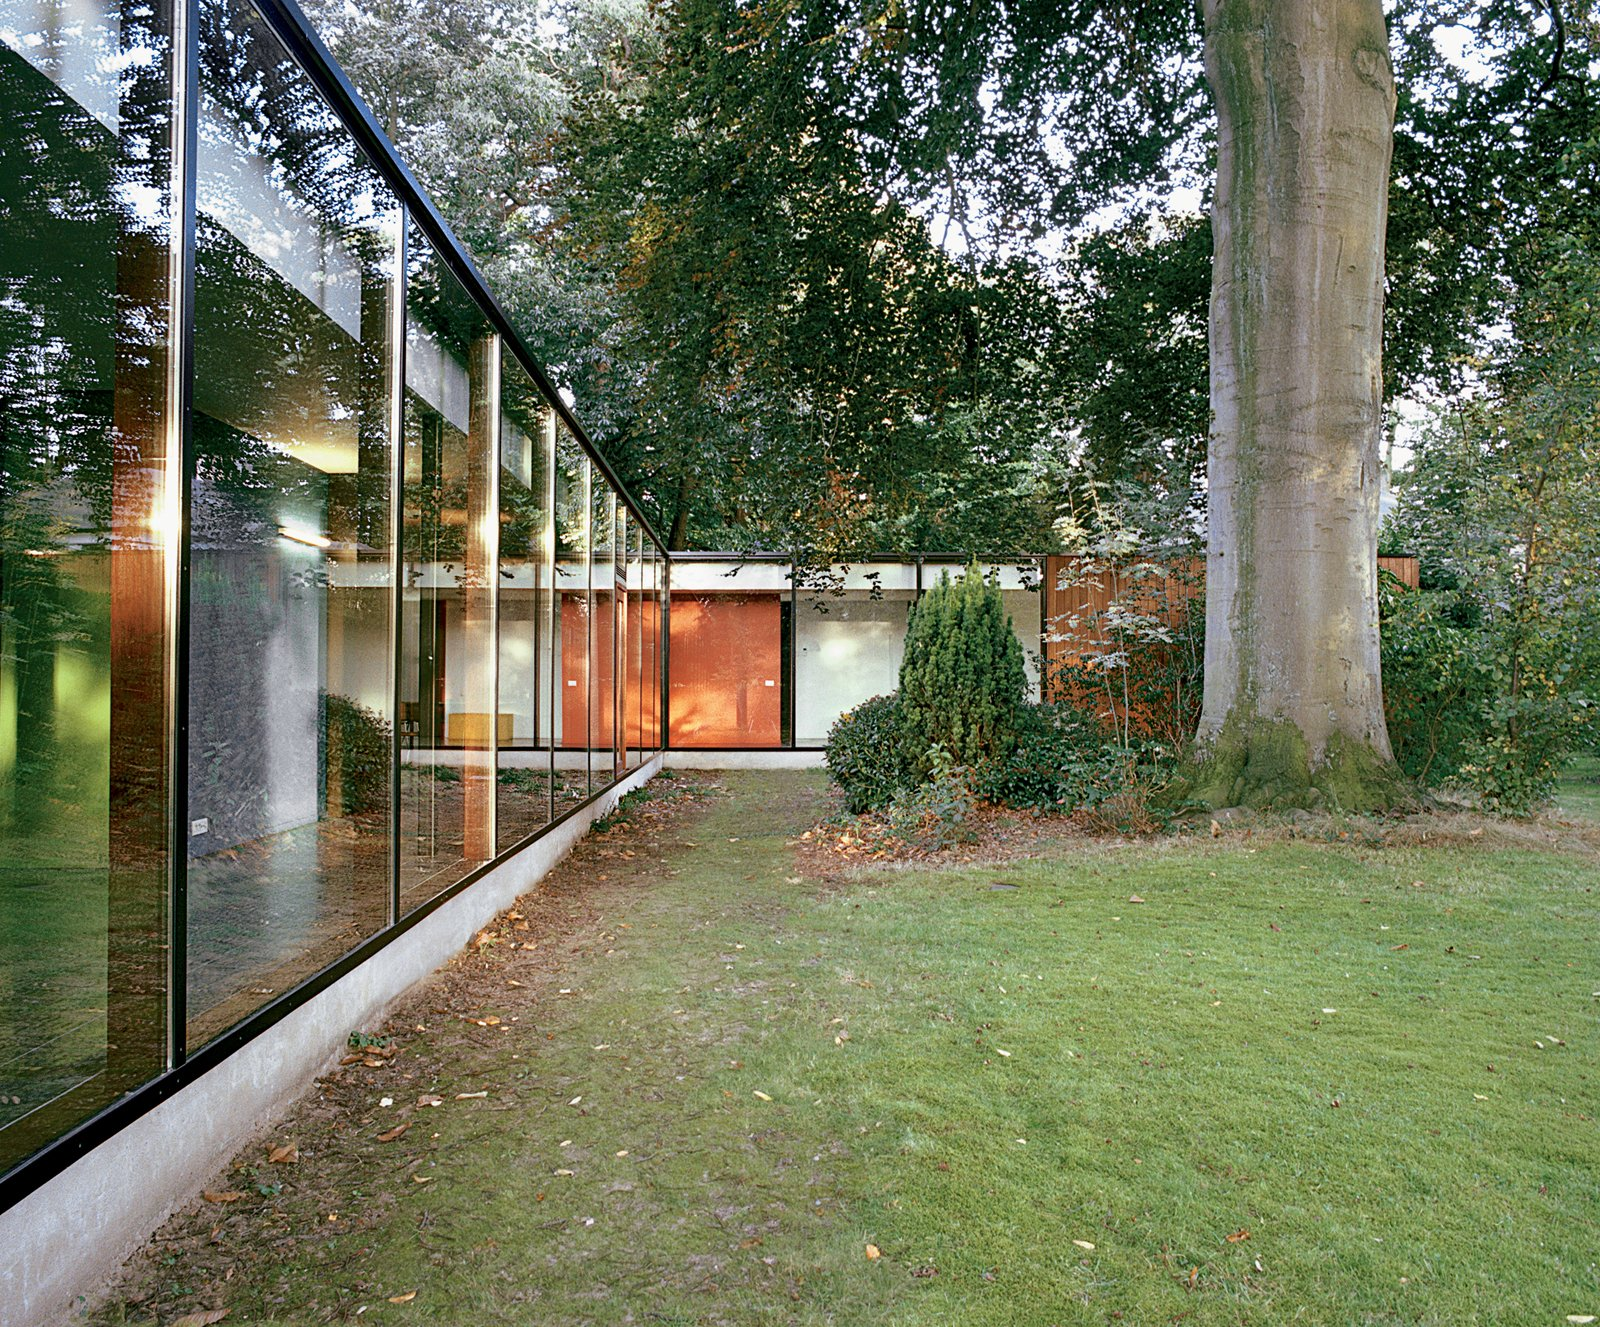 The 300-year-old beech tree supplies shade, movement, sound, and color to the site, and provides a towering natural counterpoint to the renovated home's long, low expanses of glass.  Ways to Incorporate Trees into Homes by Diana Budds from The Tree of Ghent